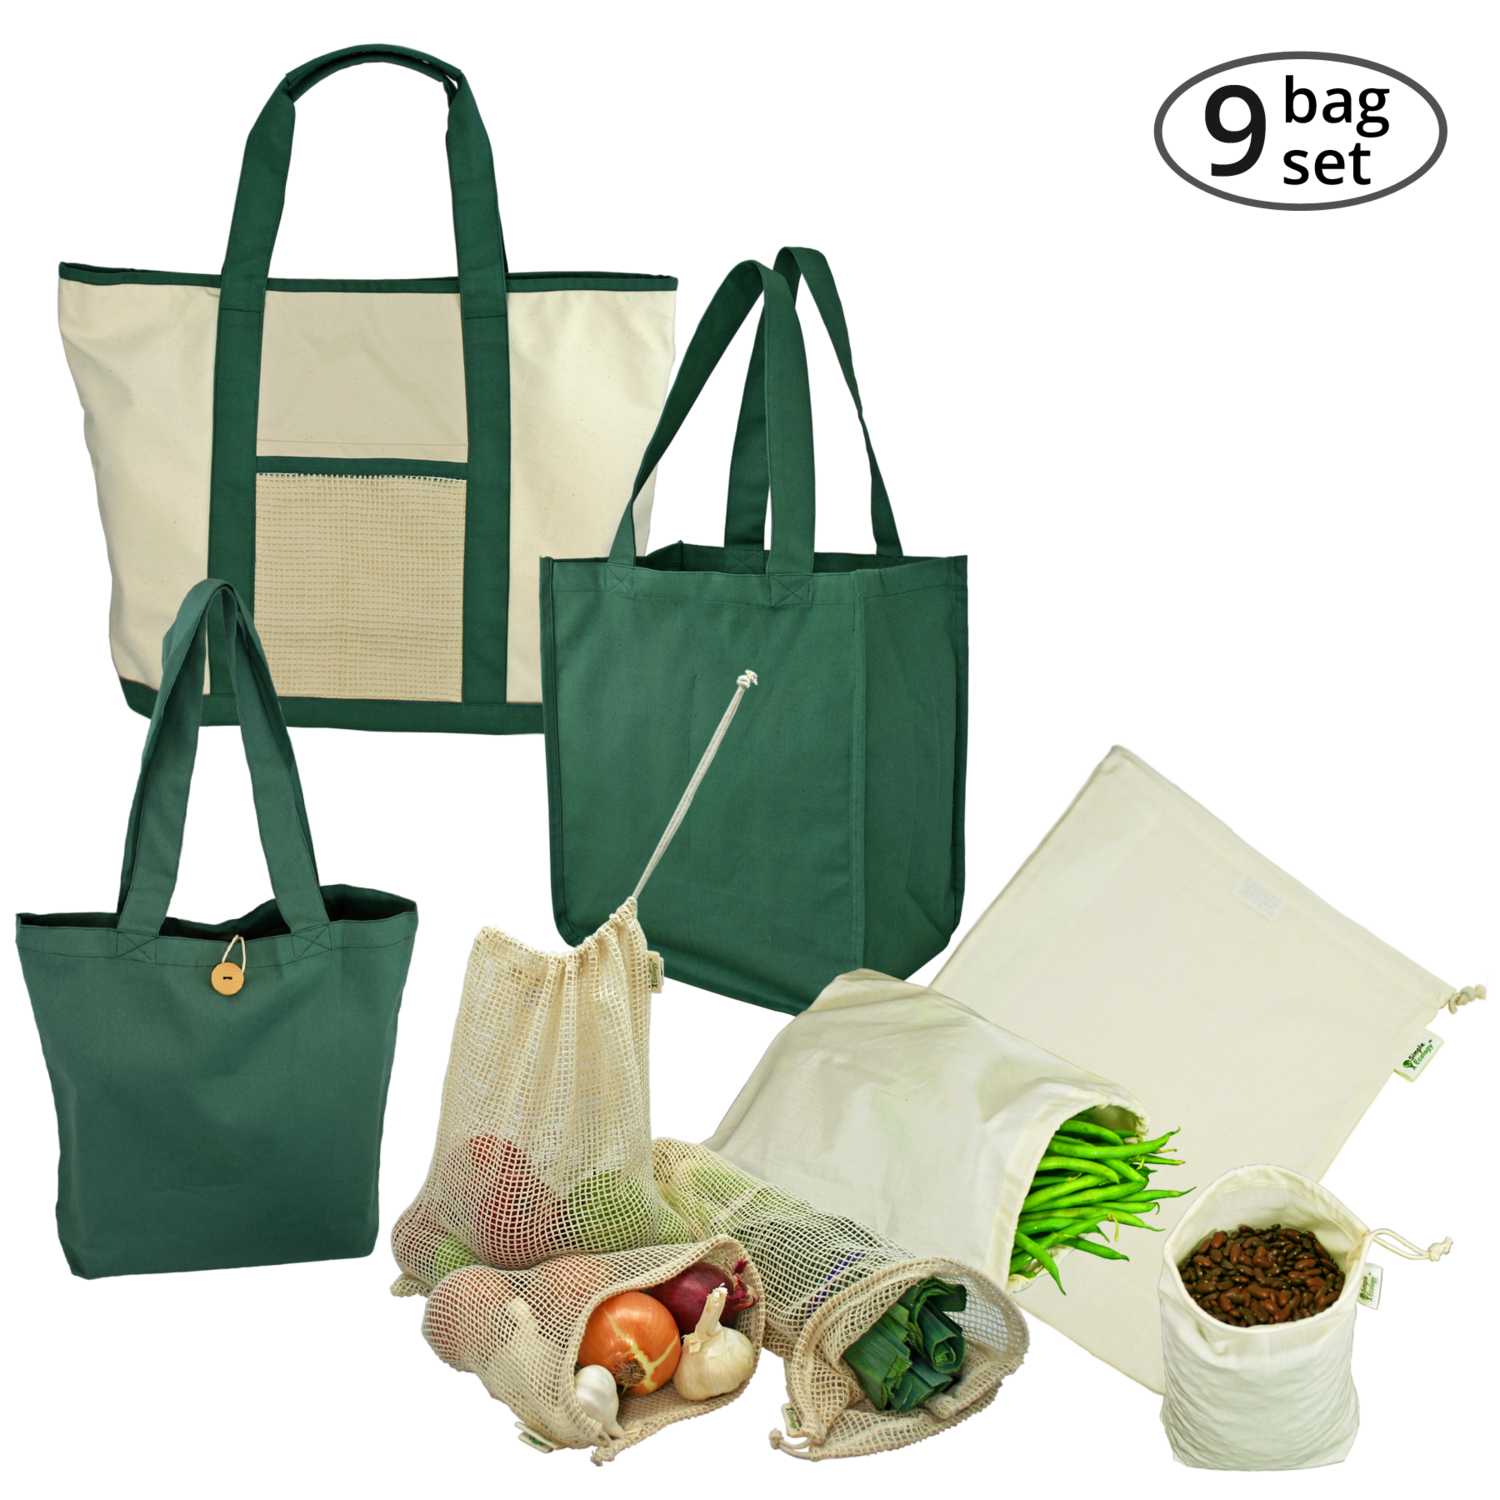 black and white Shop simple ecology shopper. Grocery clipart eco bag